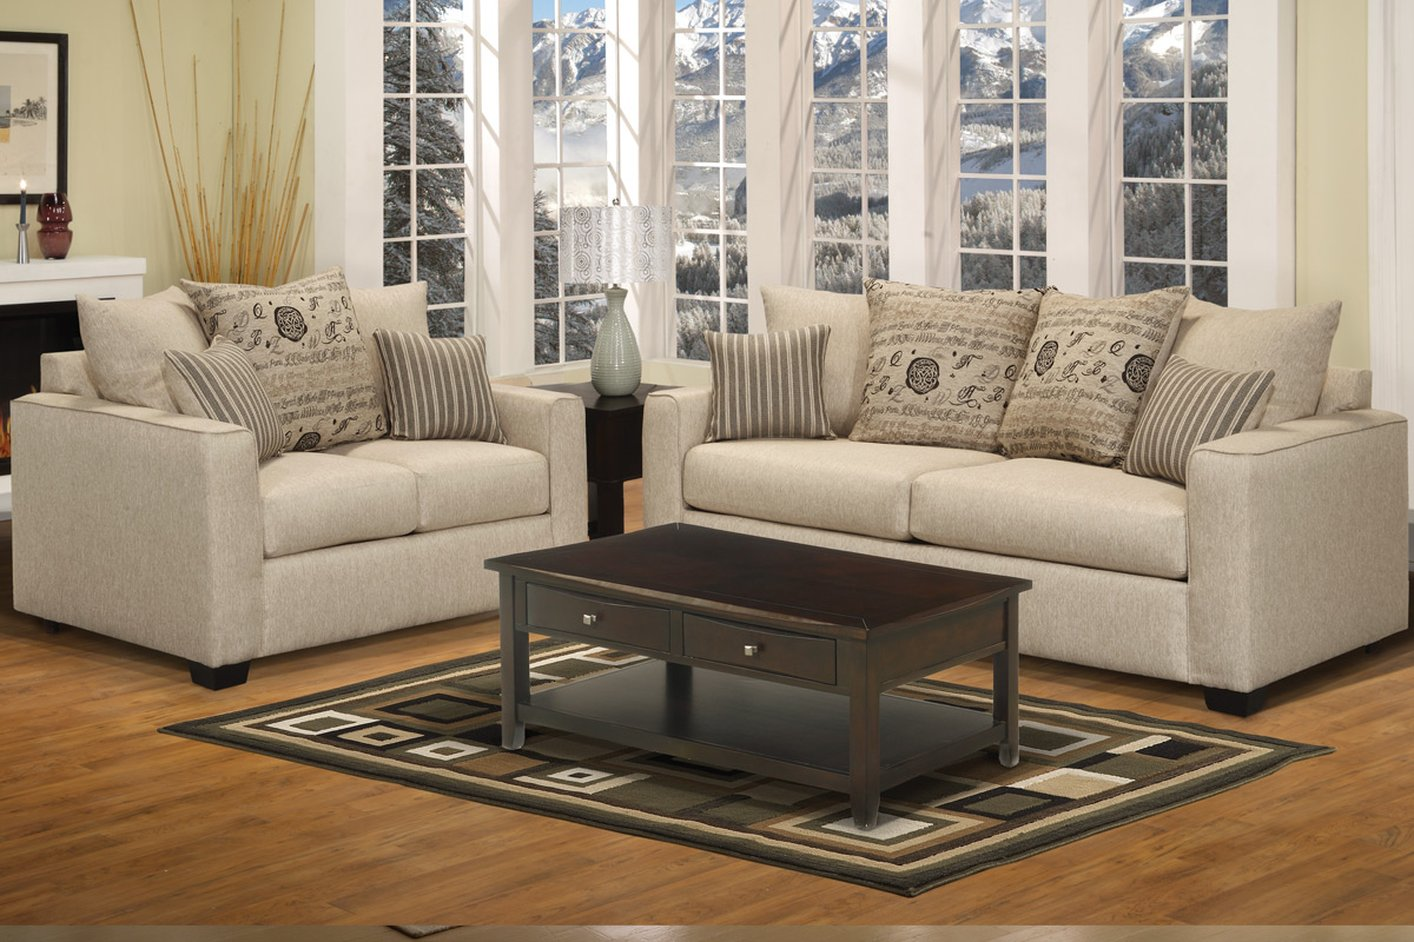 Superior Sofa U0026 Loveseat Set